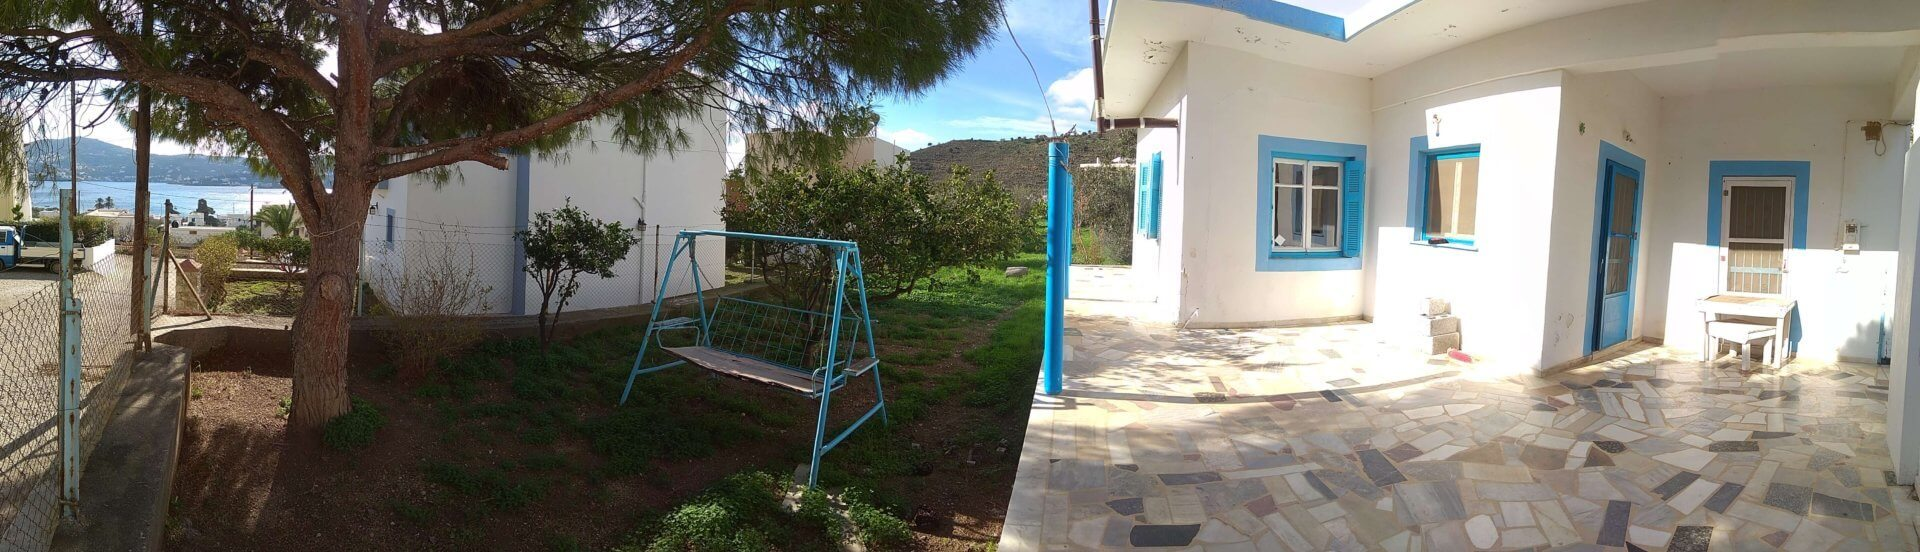 House for sale in Alinda Leros L603